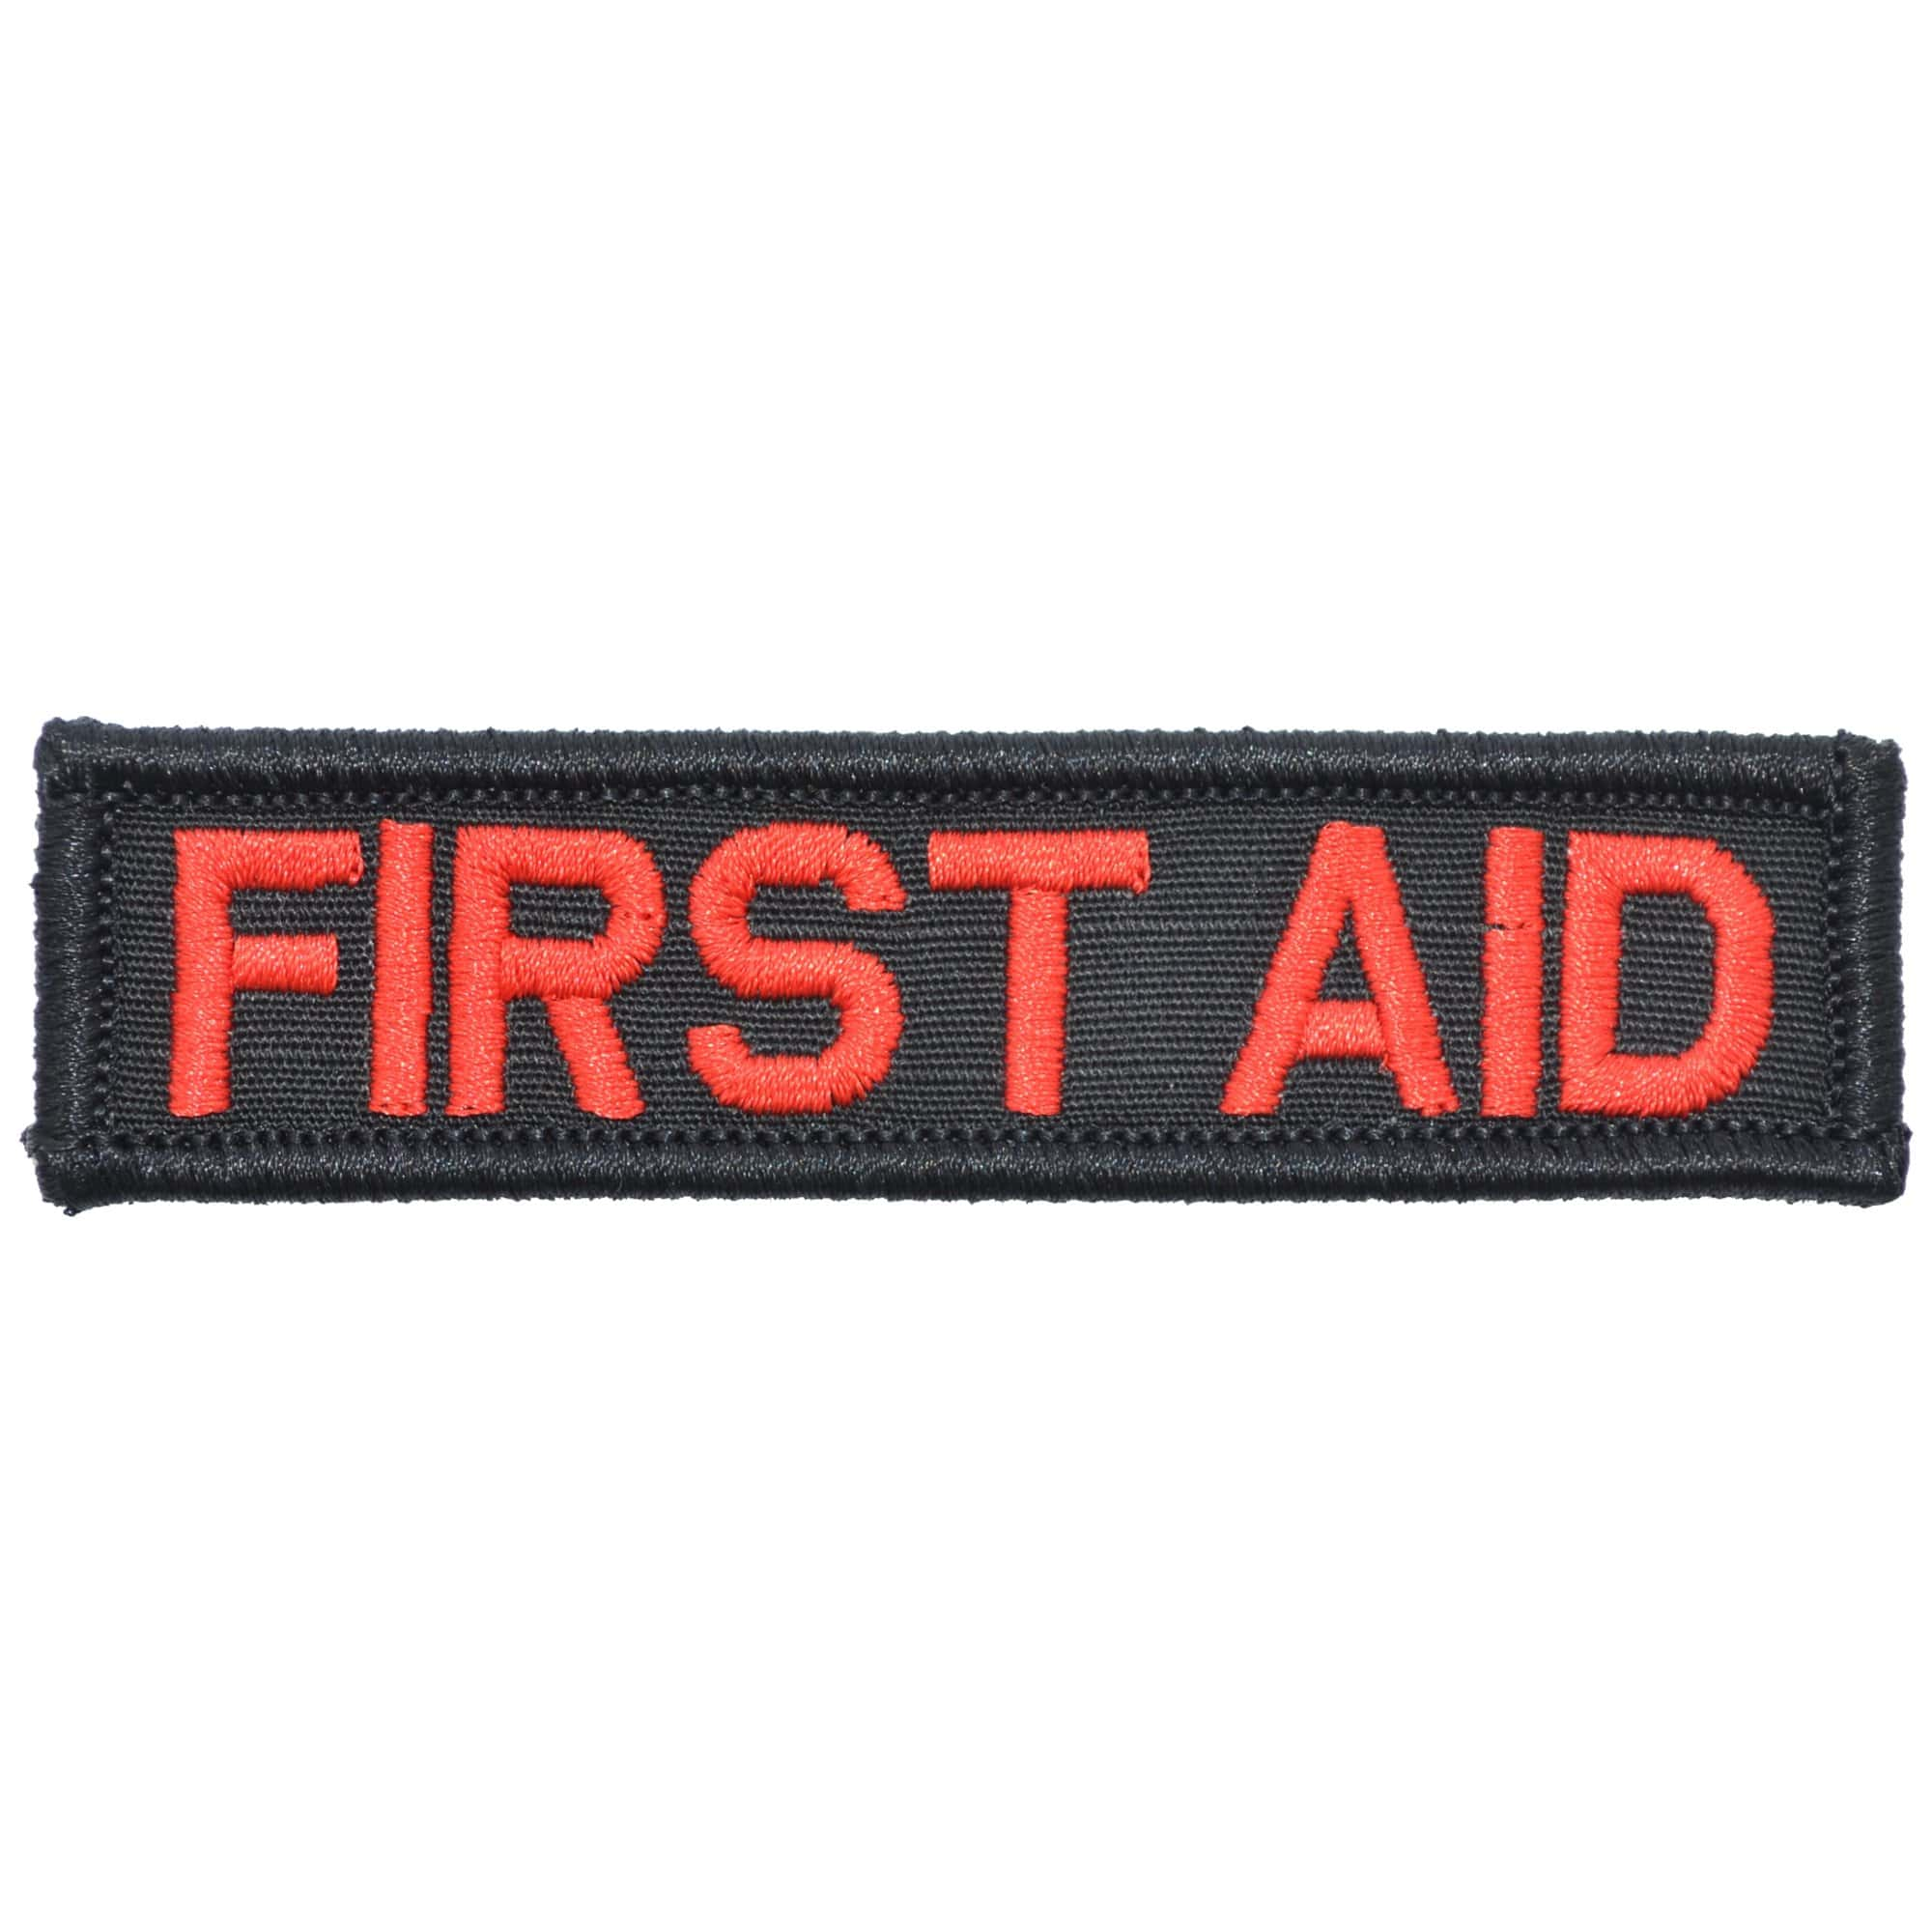 Tactical Gear Junkie Patches Black First Aid - 1x3.75 Patch